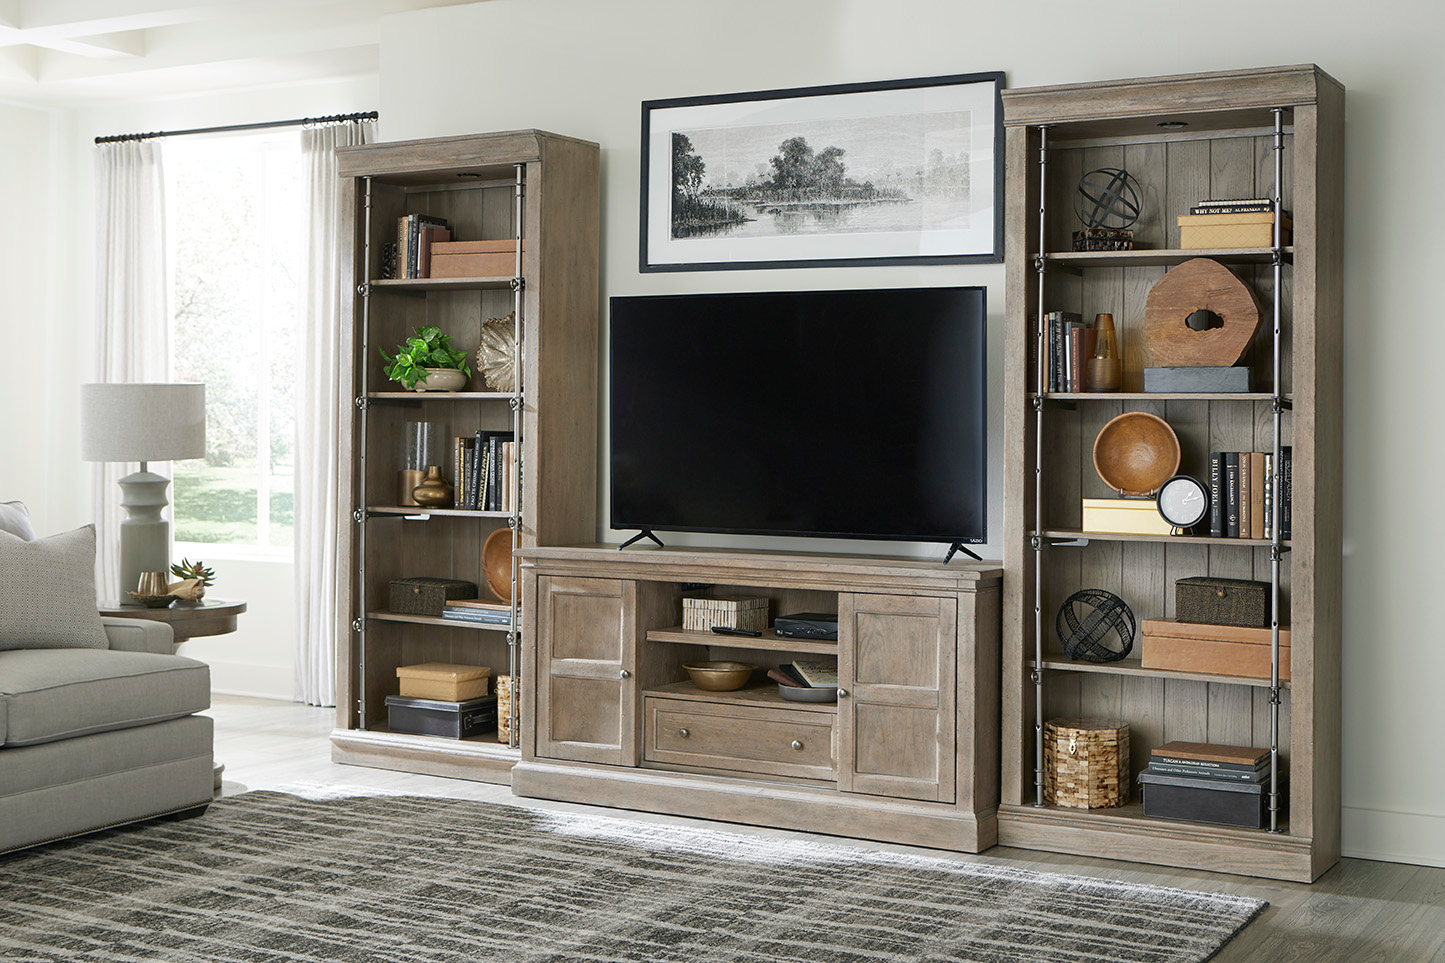 Media Console and Bookcases